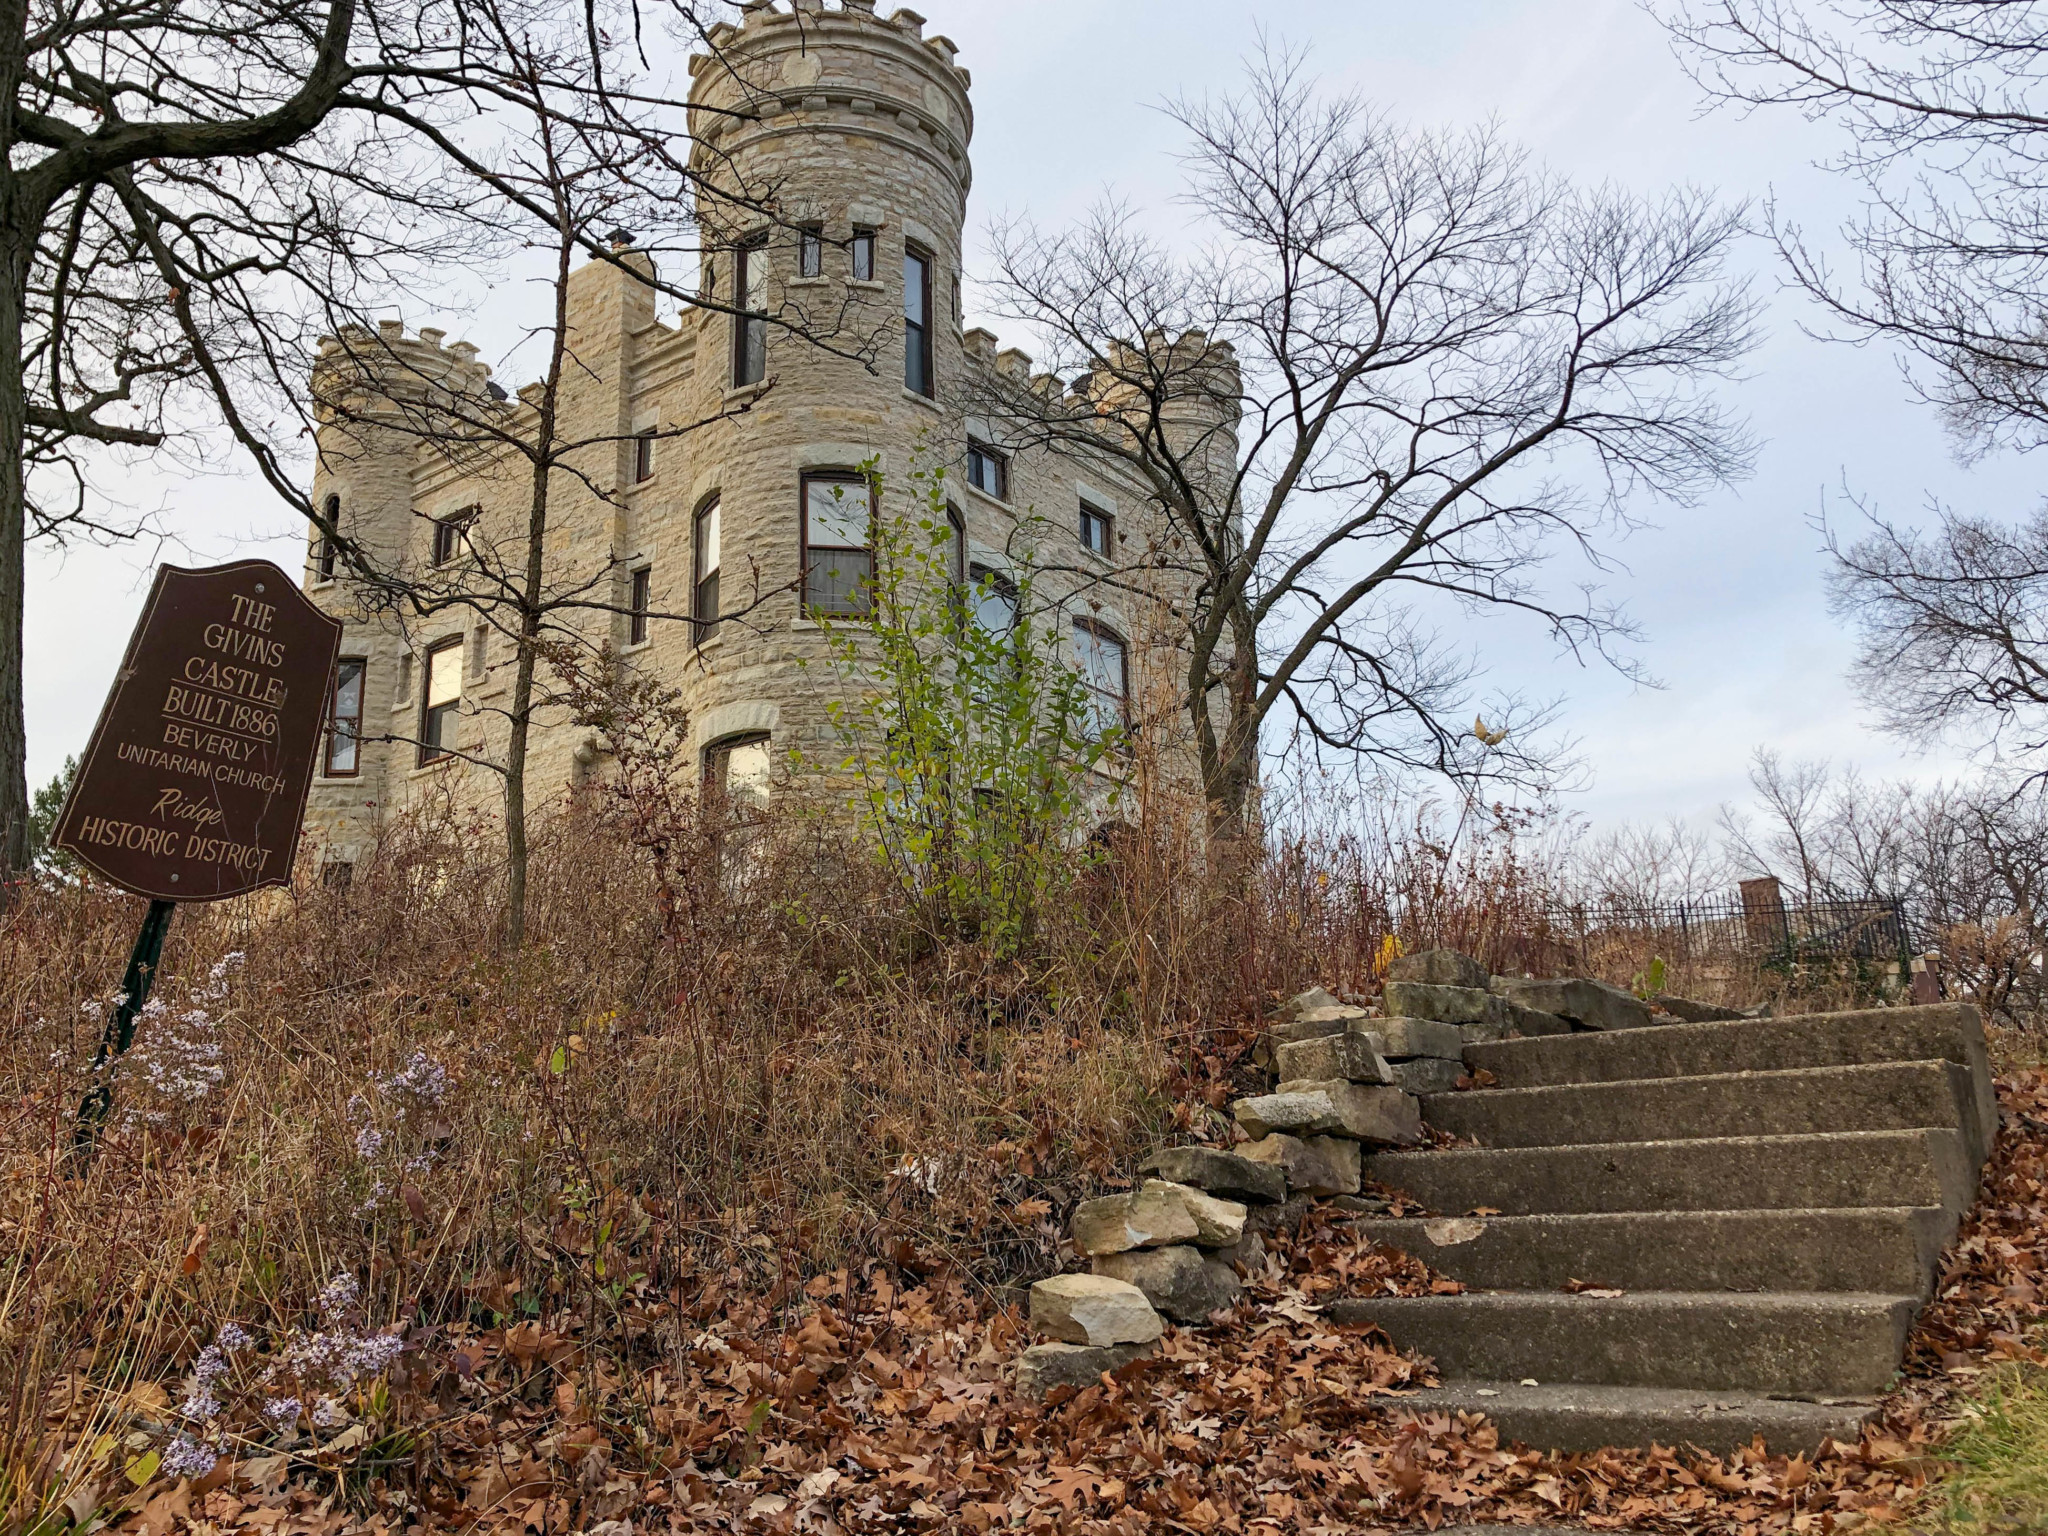 The Givins Castle built 1886. Photo Credit: Scott Smith